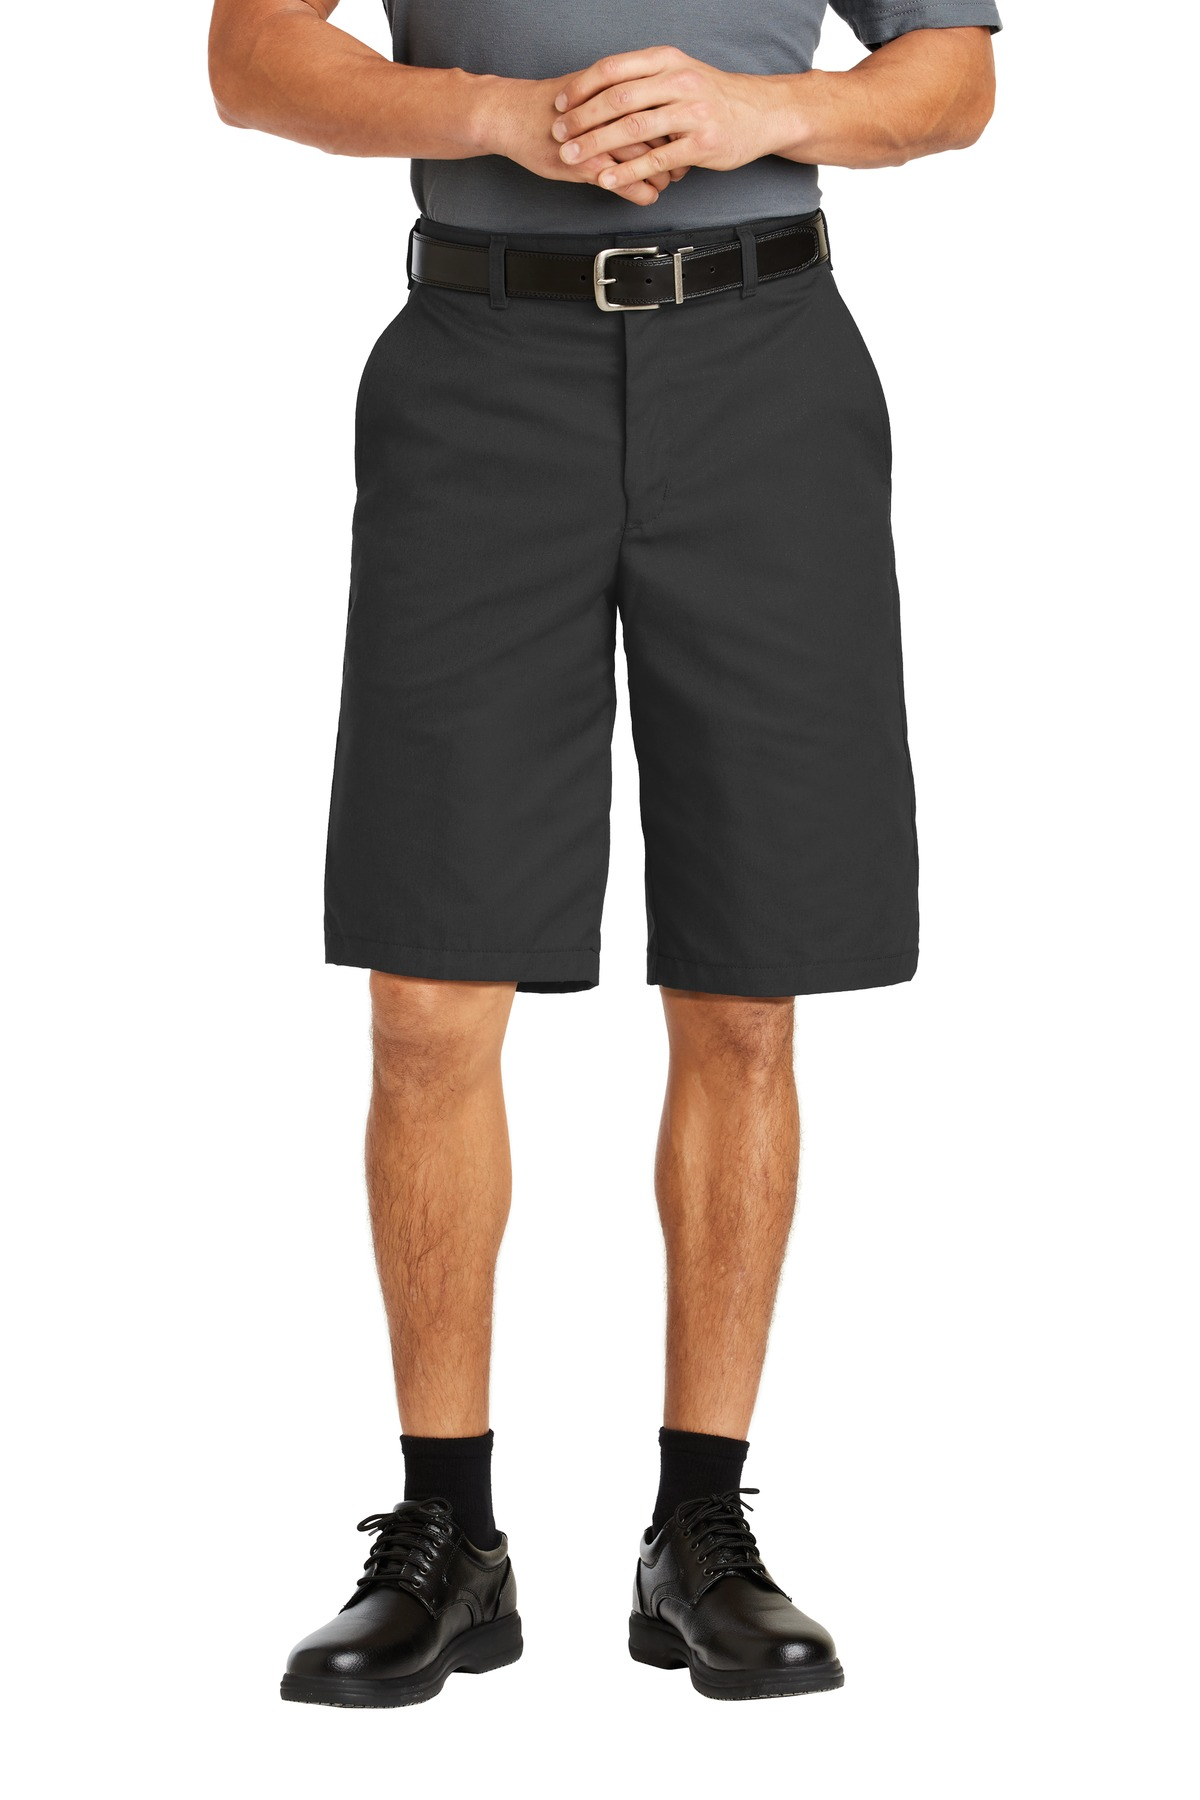 Red Kap ®  Industrial Work Short. PT26 - Charcoal